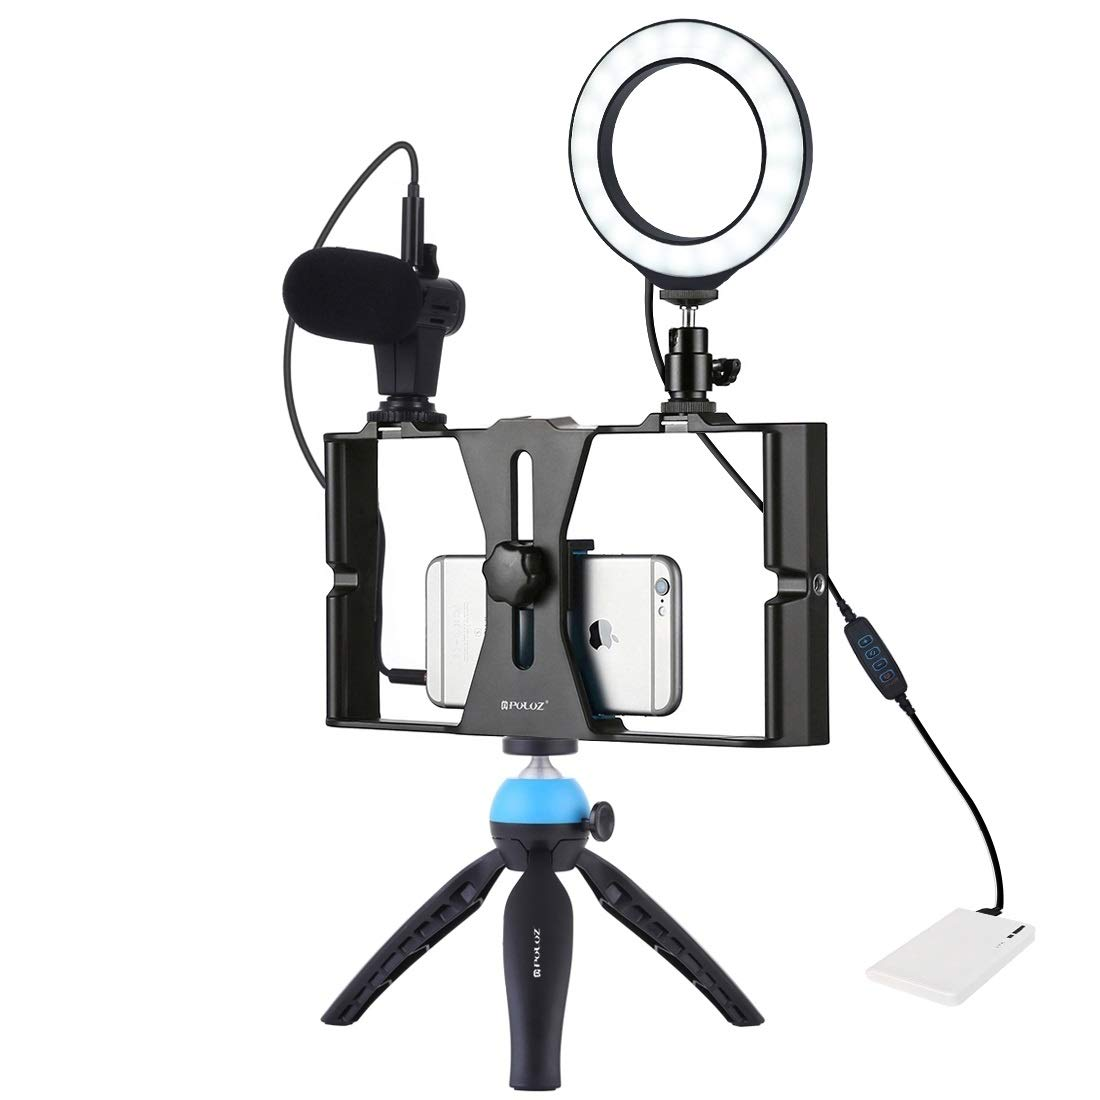 4 in 1 Vlogging Live Broadcast Smartphone Video Rig + 4.7 inch 12cm Ring LED Selfie Light Kits with Microphone + Tripod Mount + Cold Shoe Tripod Head for iPhone, Galaxy, Huawei, Xiaomi, HTC, LG, Googl by CAOMING